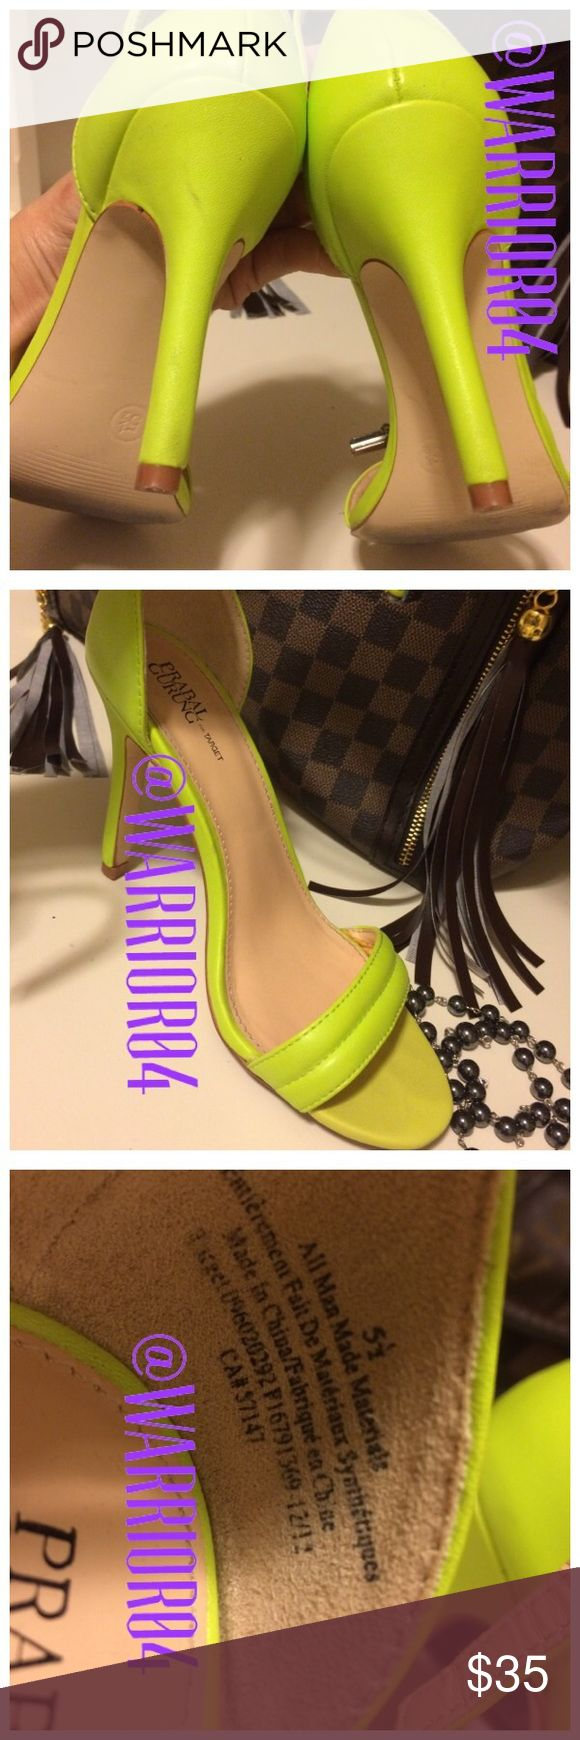 Target Fluorescent  Yellow Strappy Heels Target Fluorescent  Yellow Strappy Heels preloved even though the size inside reads 5.5 it's definitely a size 6.5 for me preloved so sleek Prabal Gurung Shoes Heels